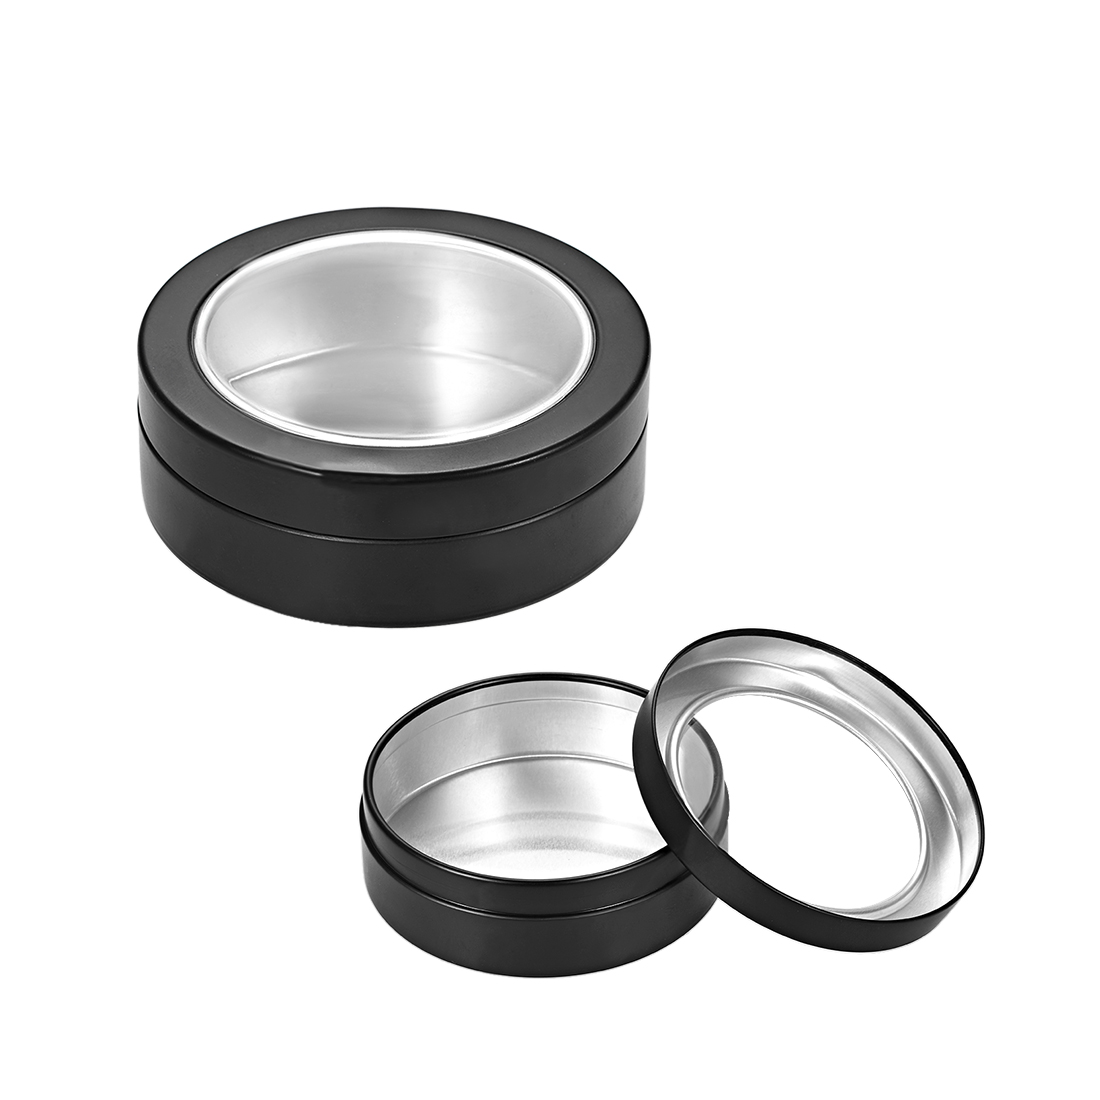 3.4oz Round Clear Window Aluminum Cans Tin Lid Containers 100ml Black 3pcs